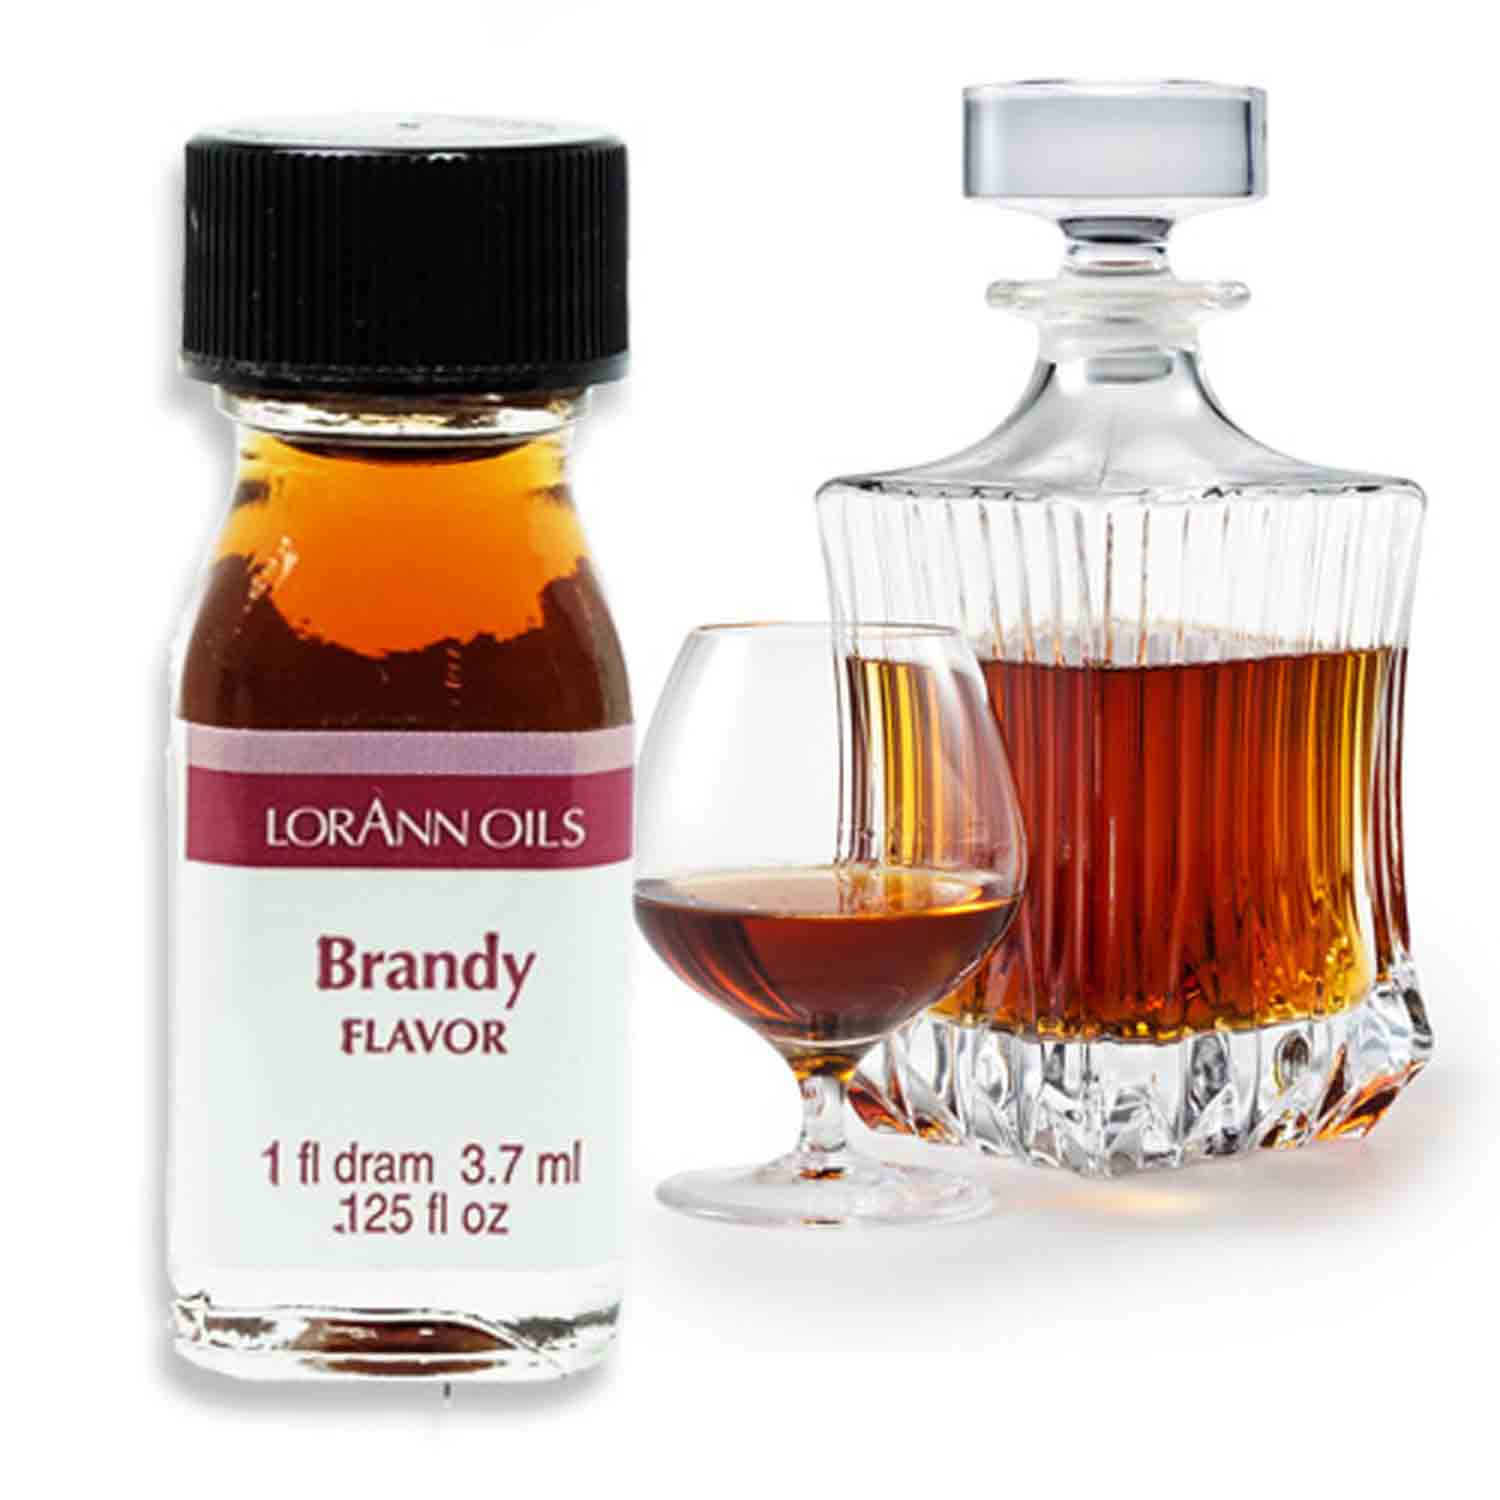 Brandy Super-Strength Flavor